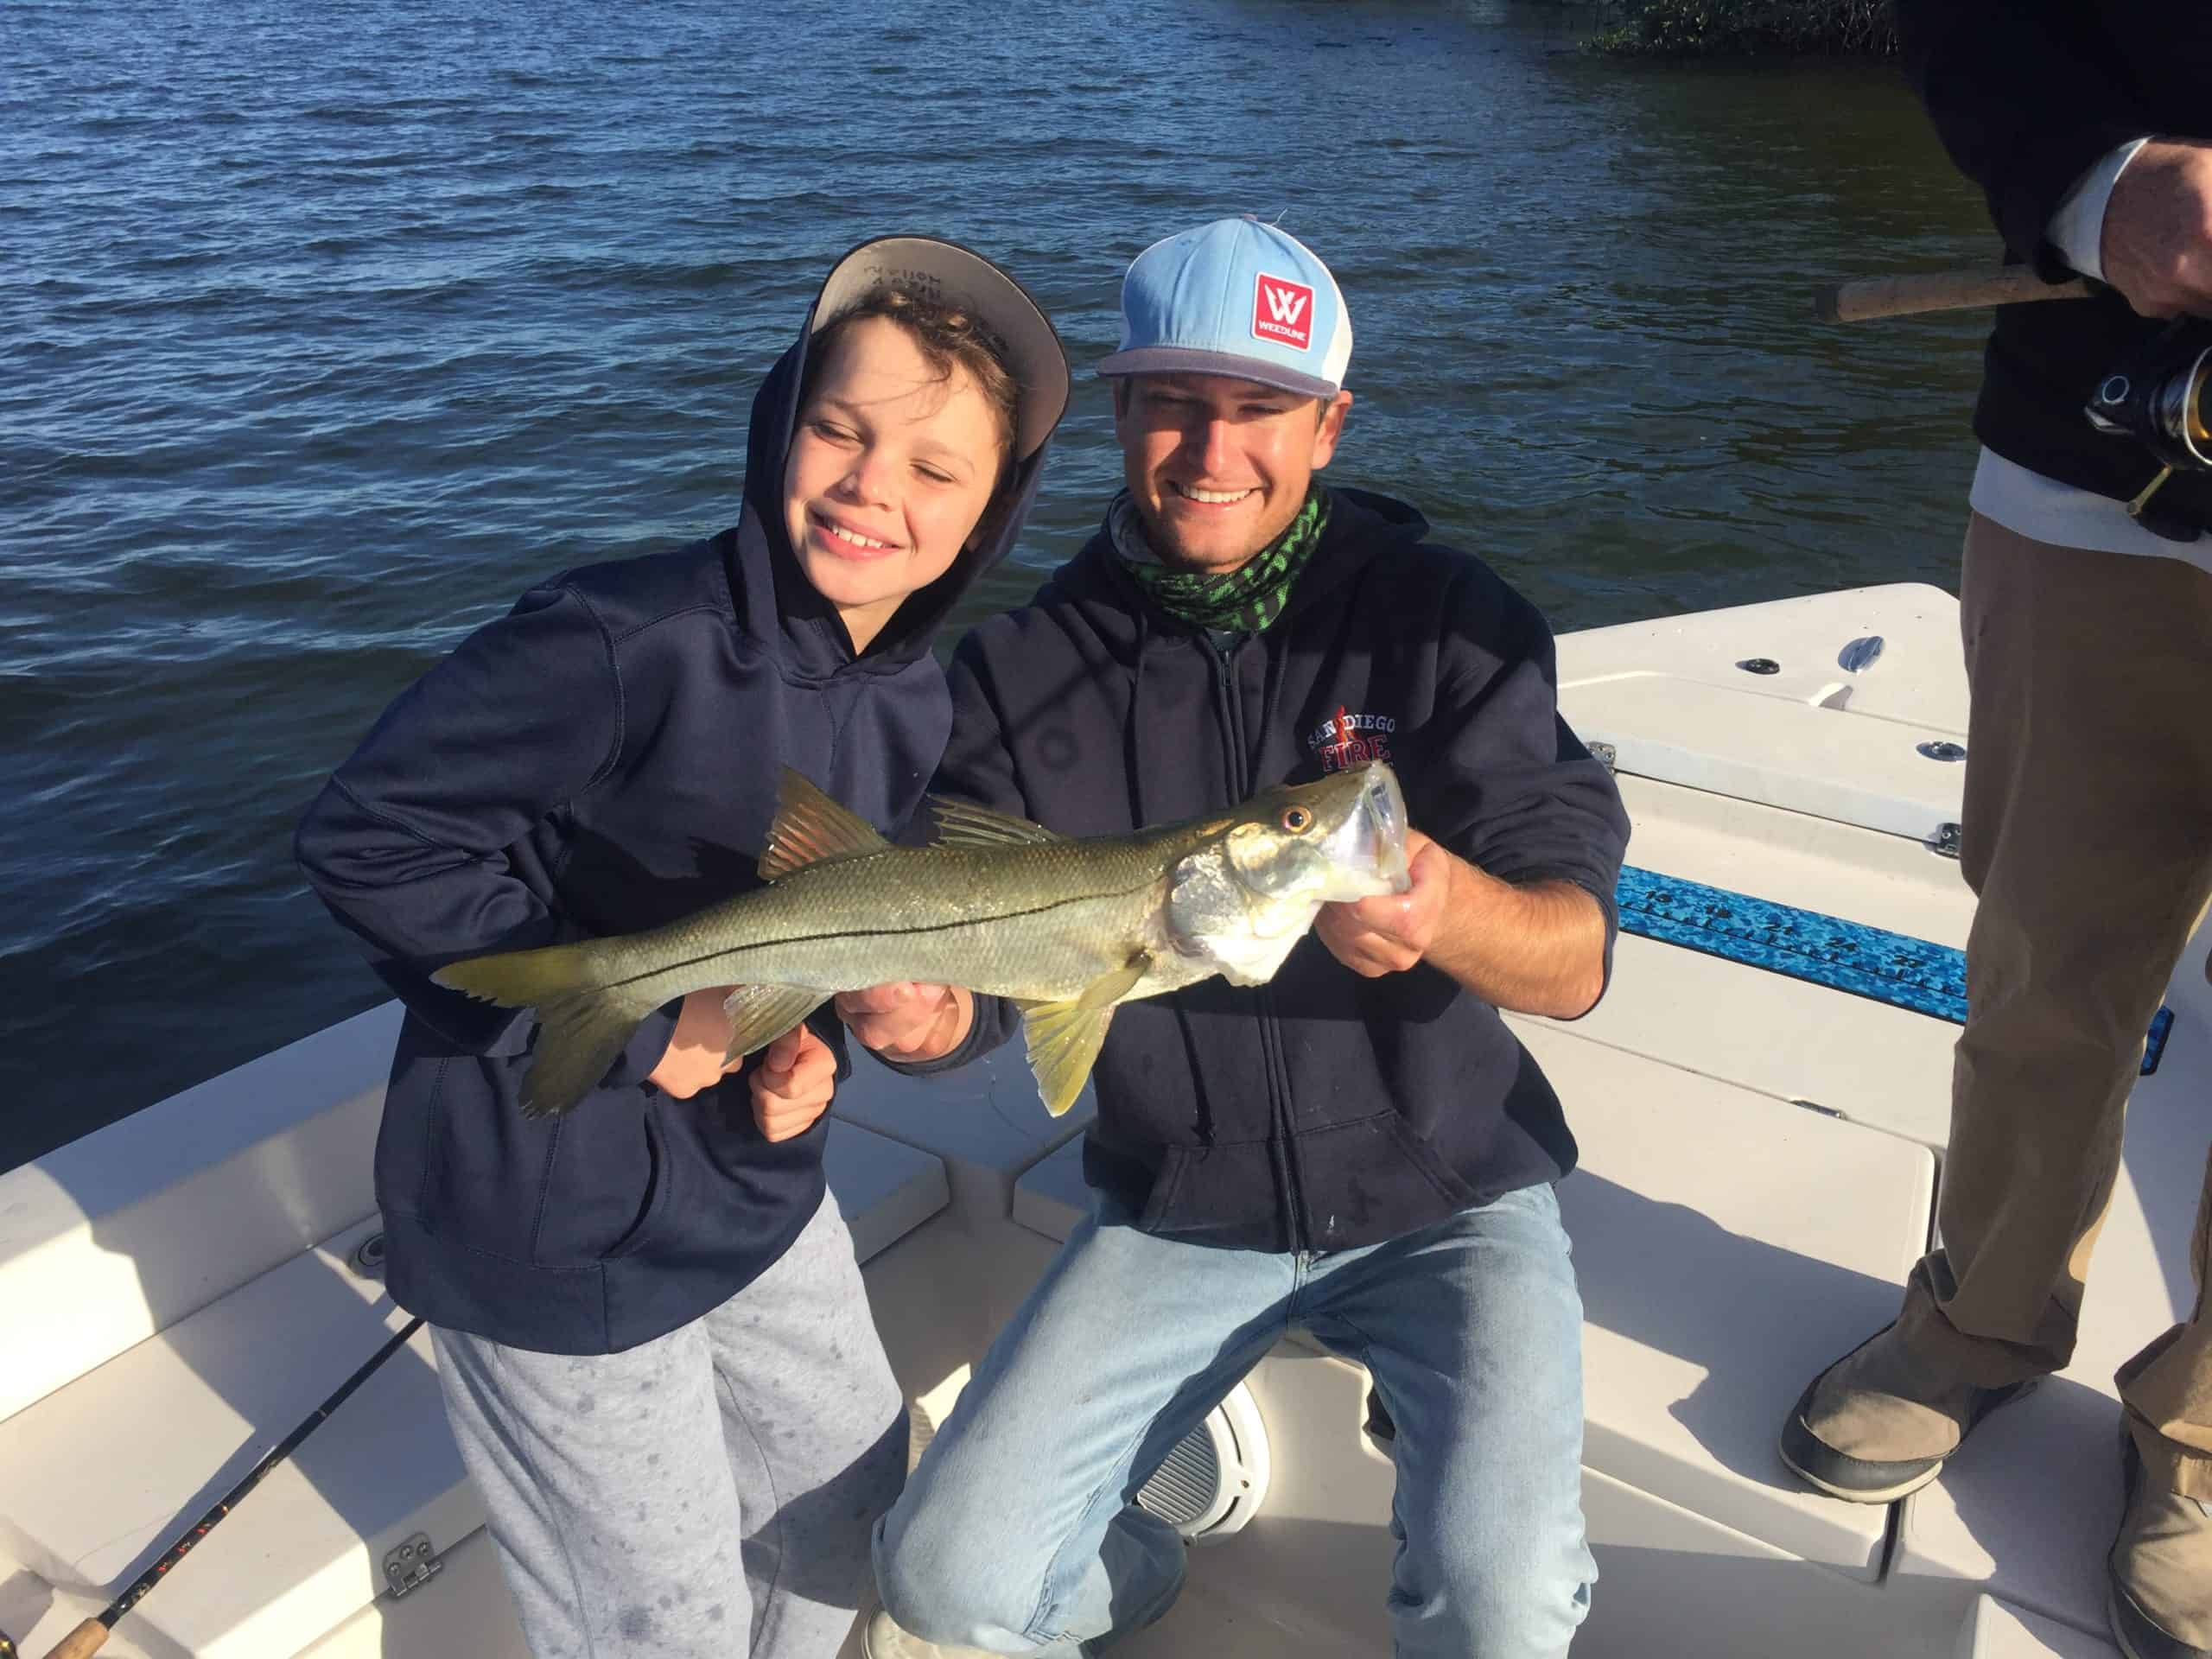 Fishing charter captain Matt Reynolds holding fish next to young boy